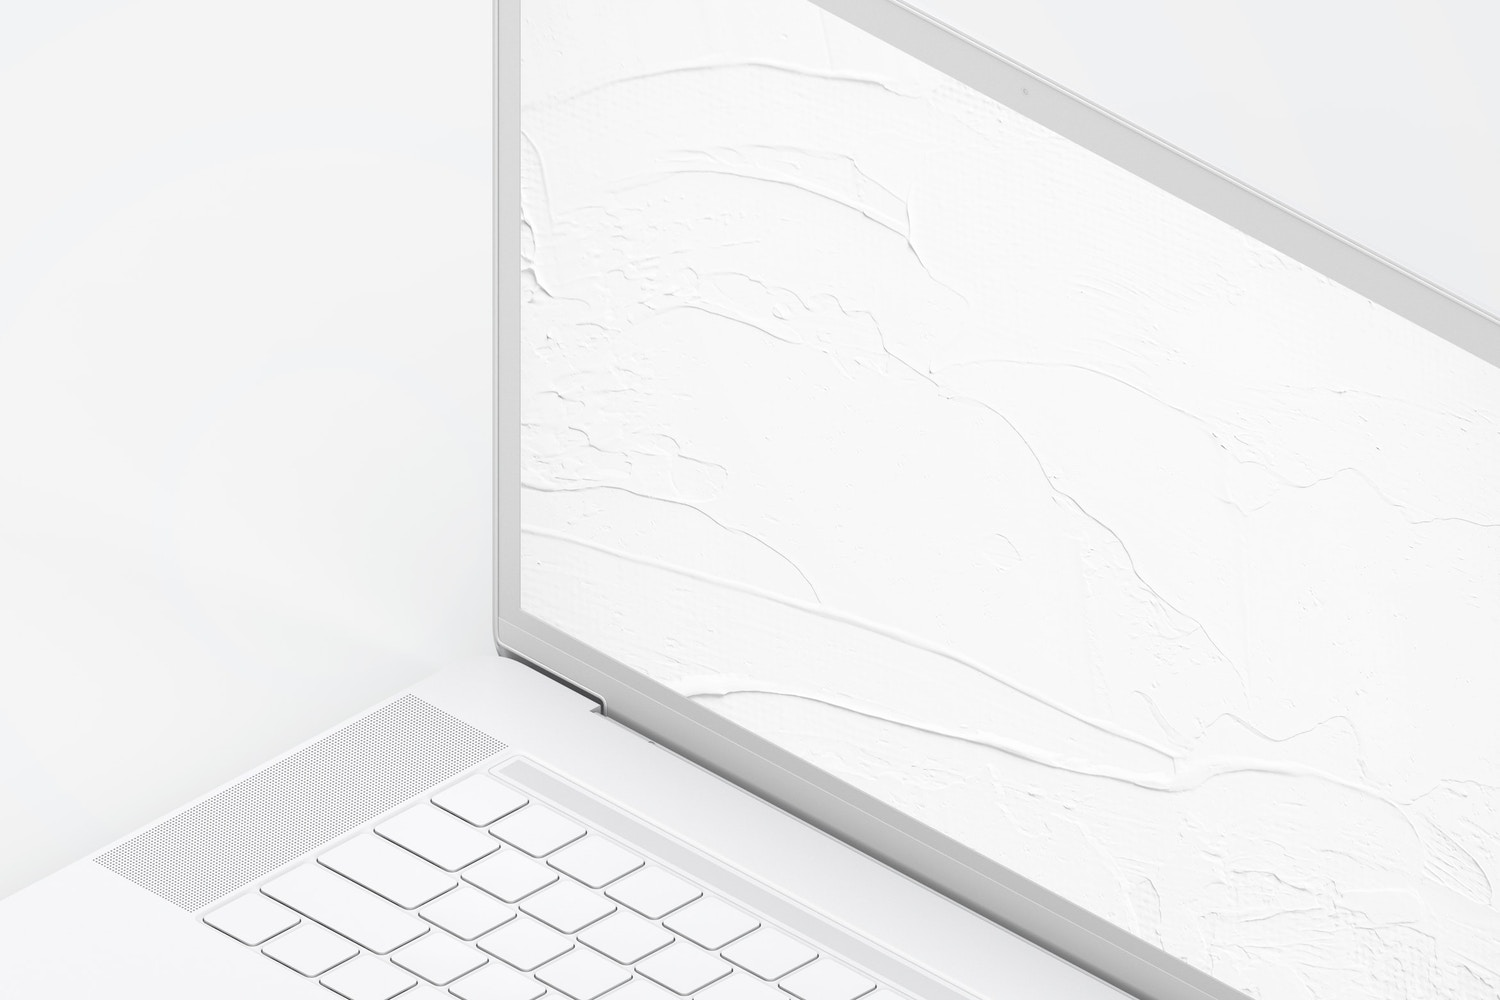 "Clay MacBook Pro 15"" with Touch Bar, Right Isometric View Mockup (3) by Original Mockups on Original Mockups"